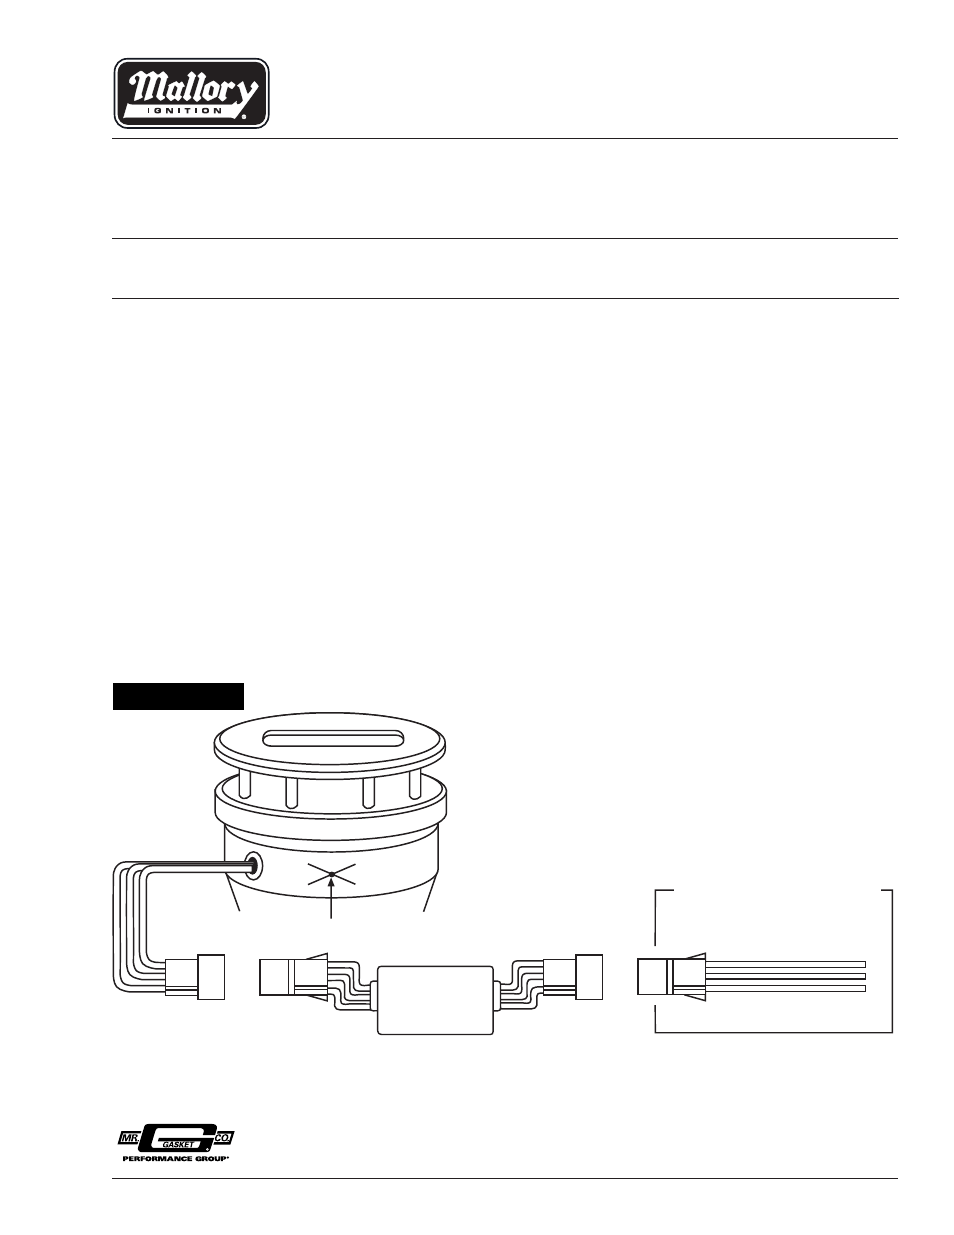 Mallory Ignition Wiring Diagram Pro 9000 Auto Electrical Willys Jeep Distributor 1979 Dodge 440 Hyfire 6a